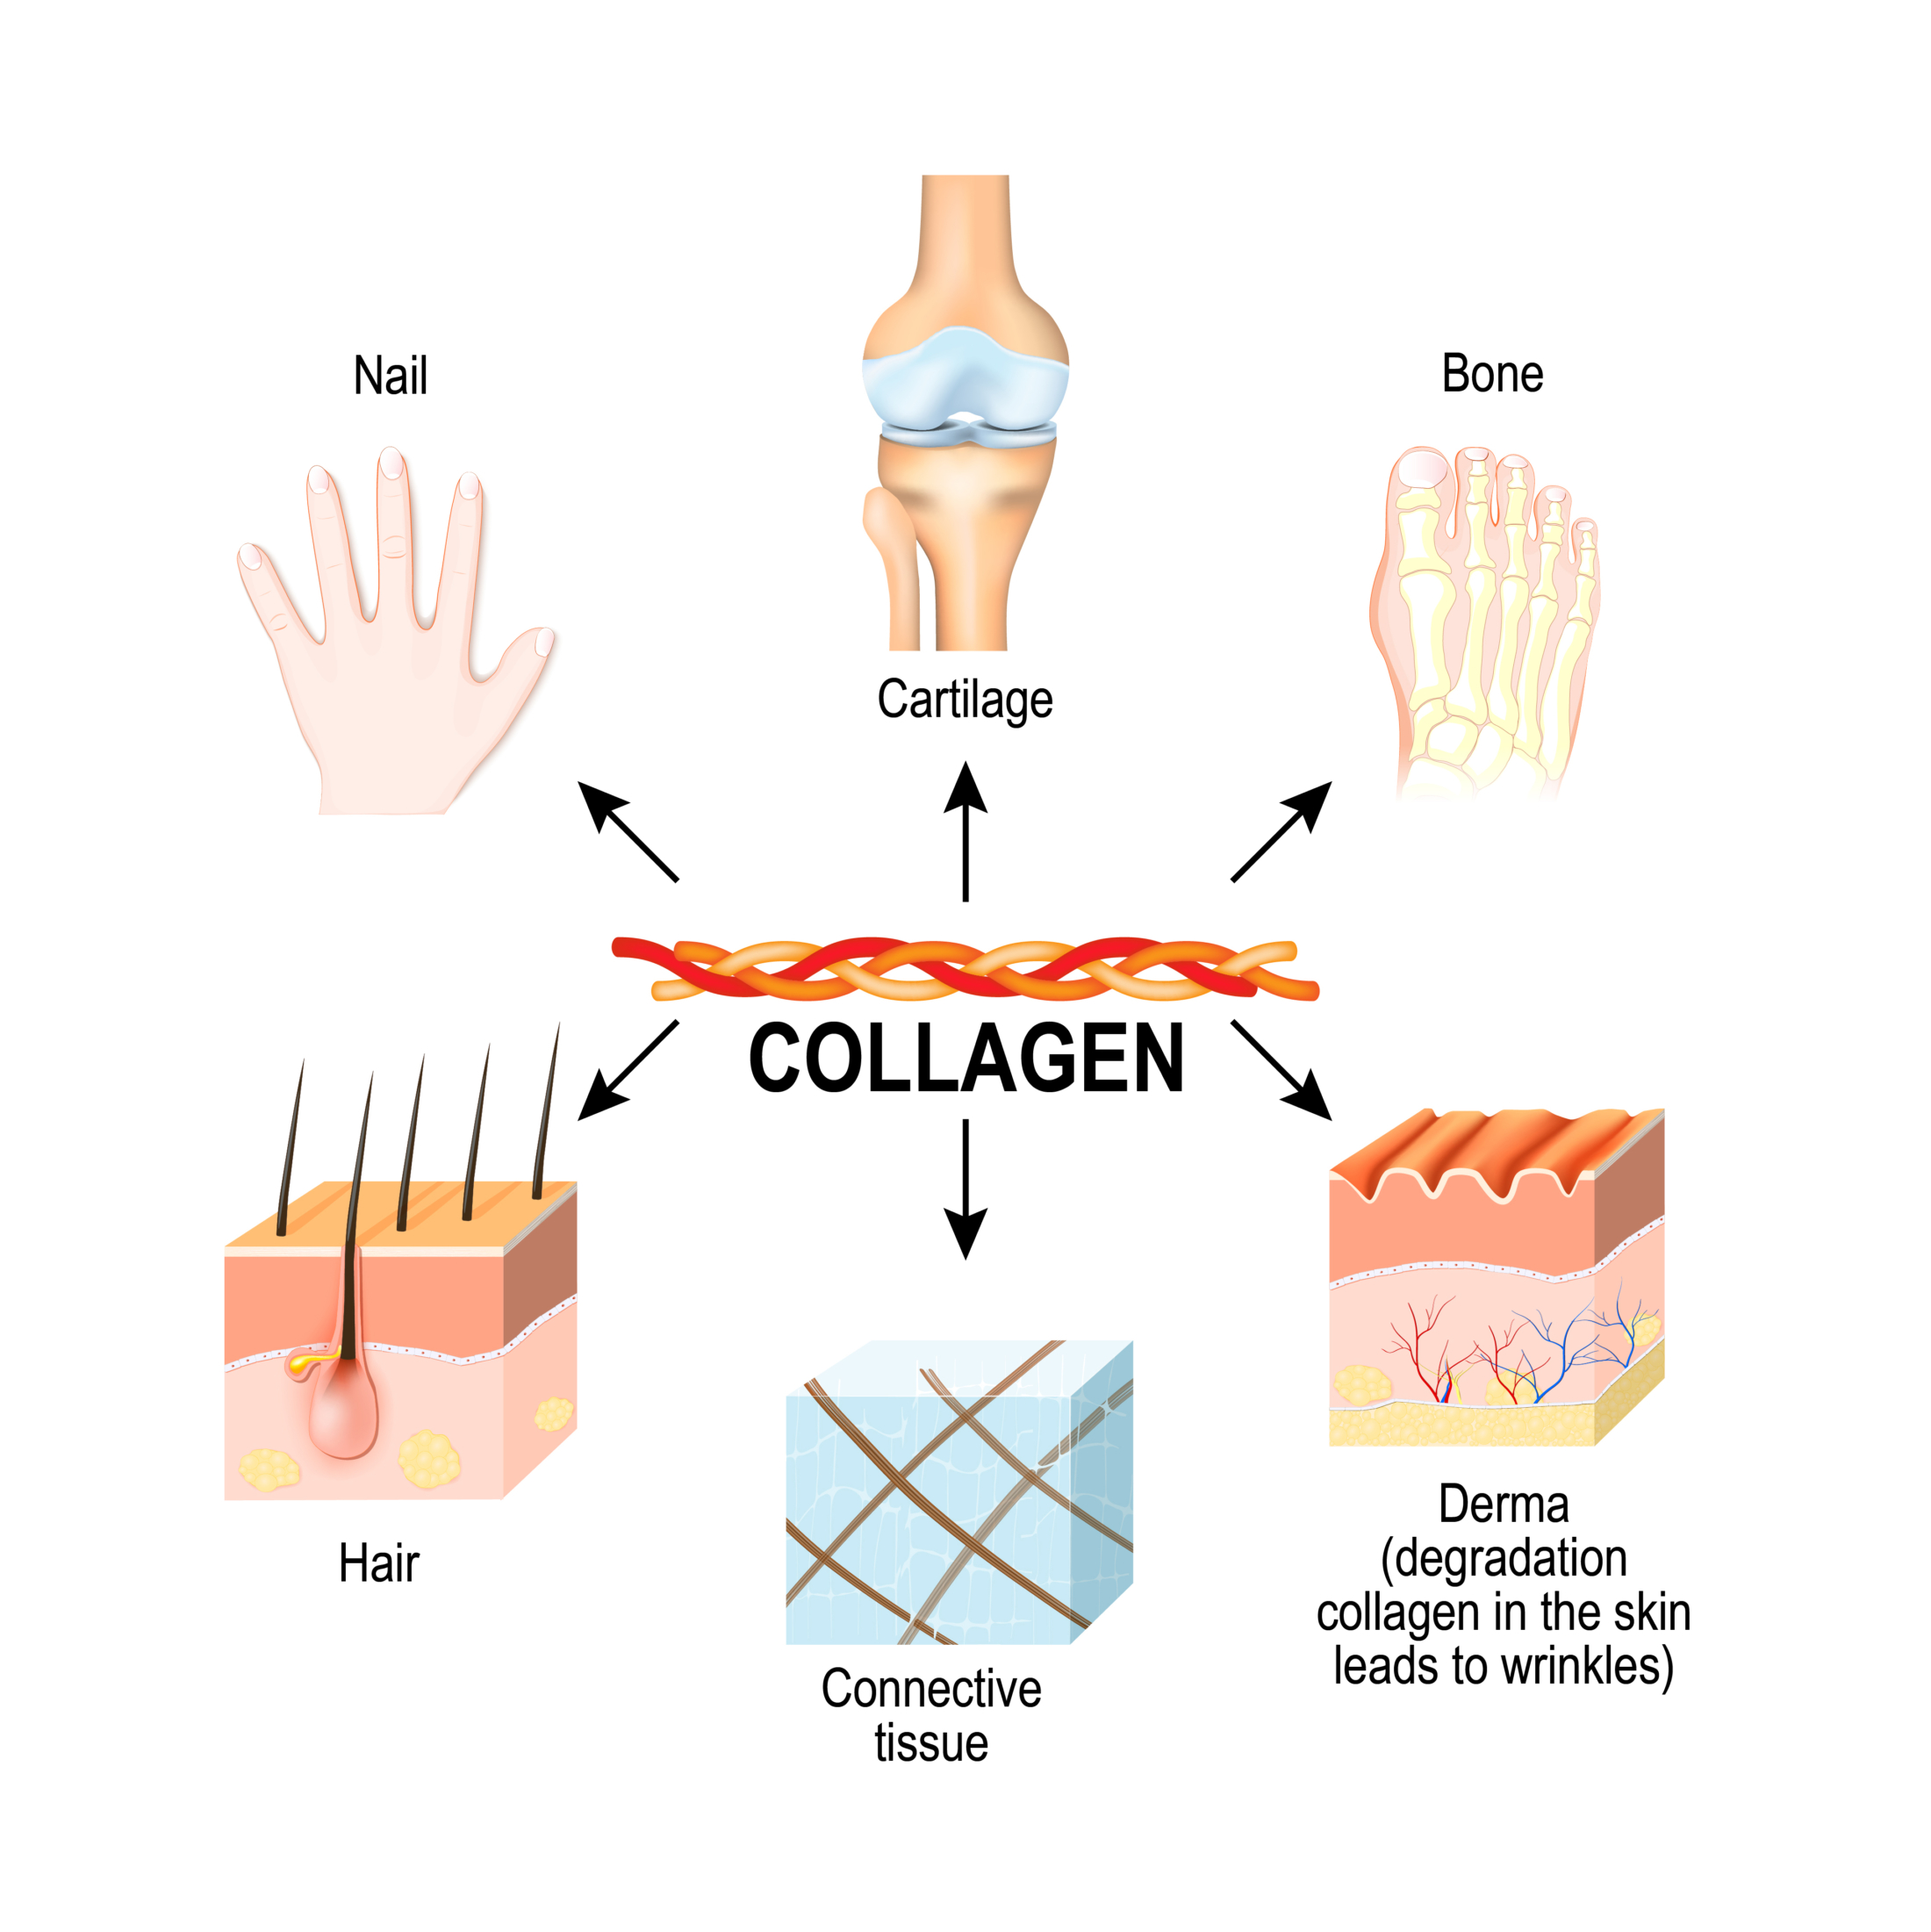 Collagen in the body